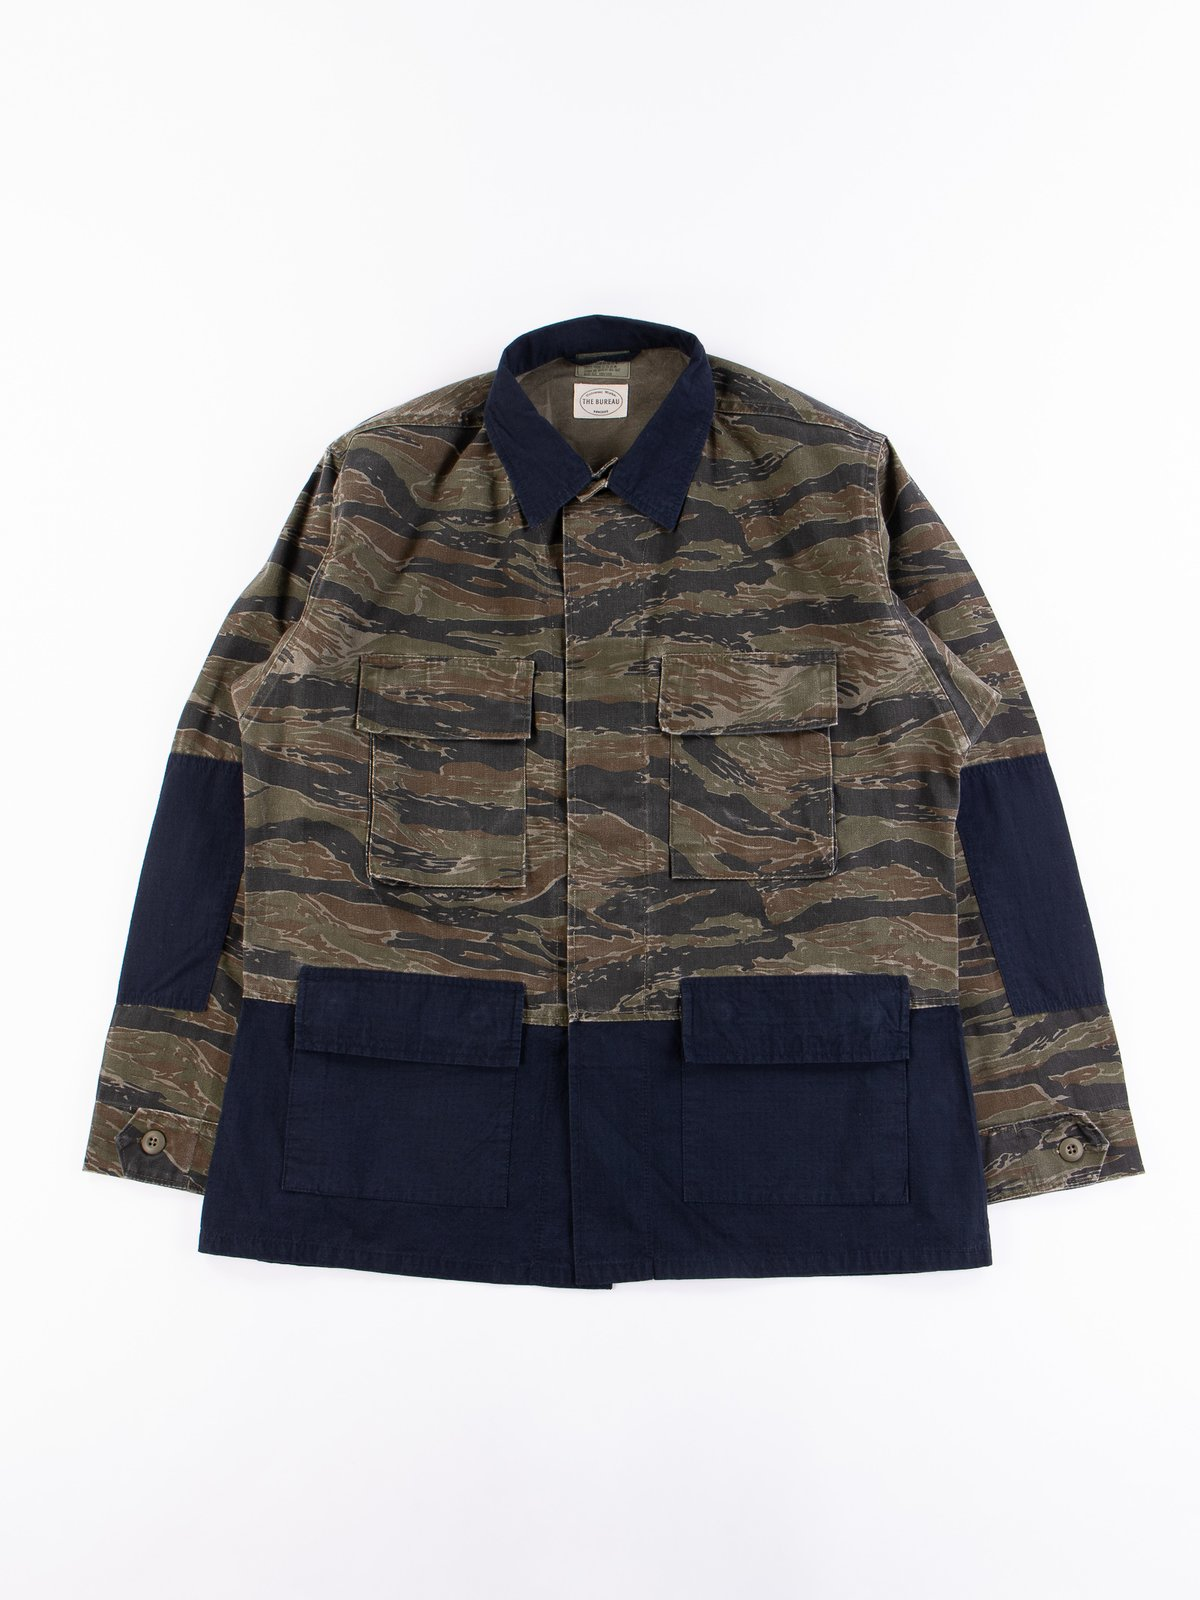 Reworks Camo/Navy Field Jacket - Image 1